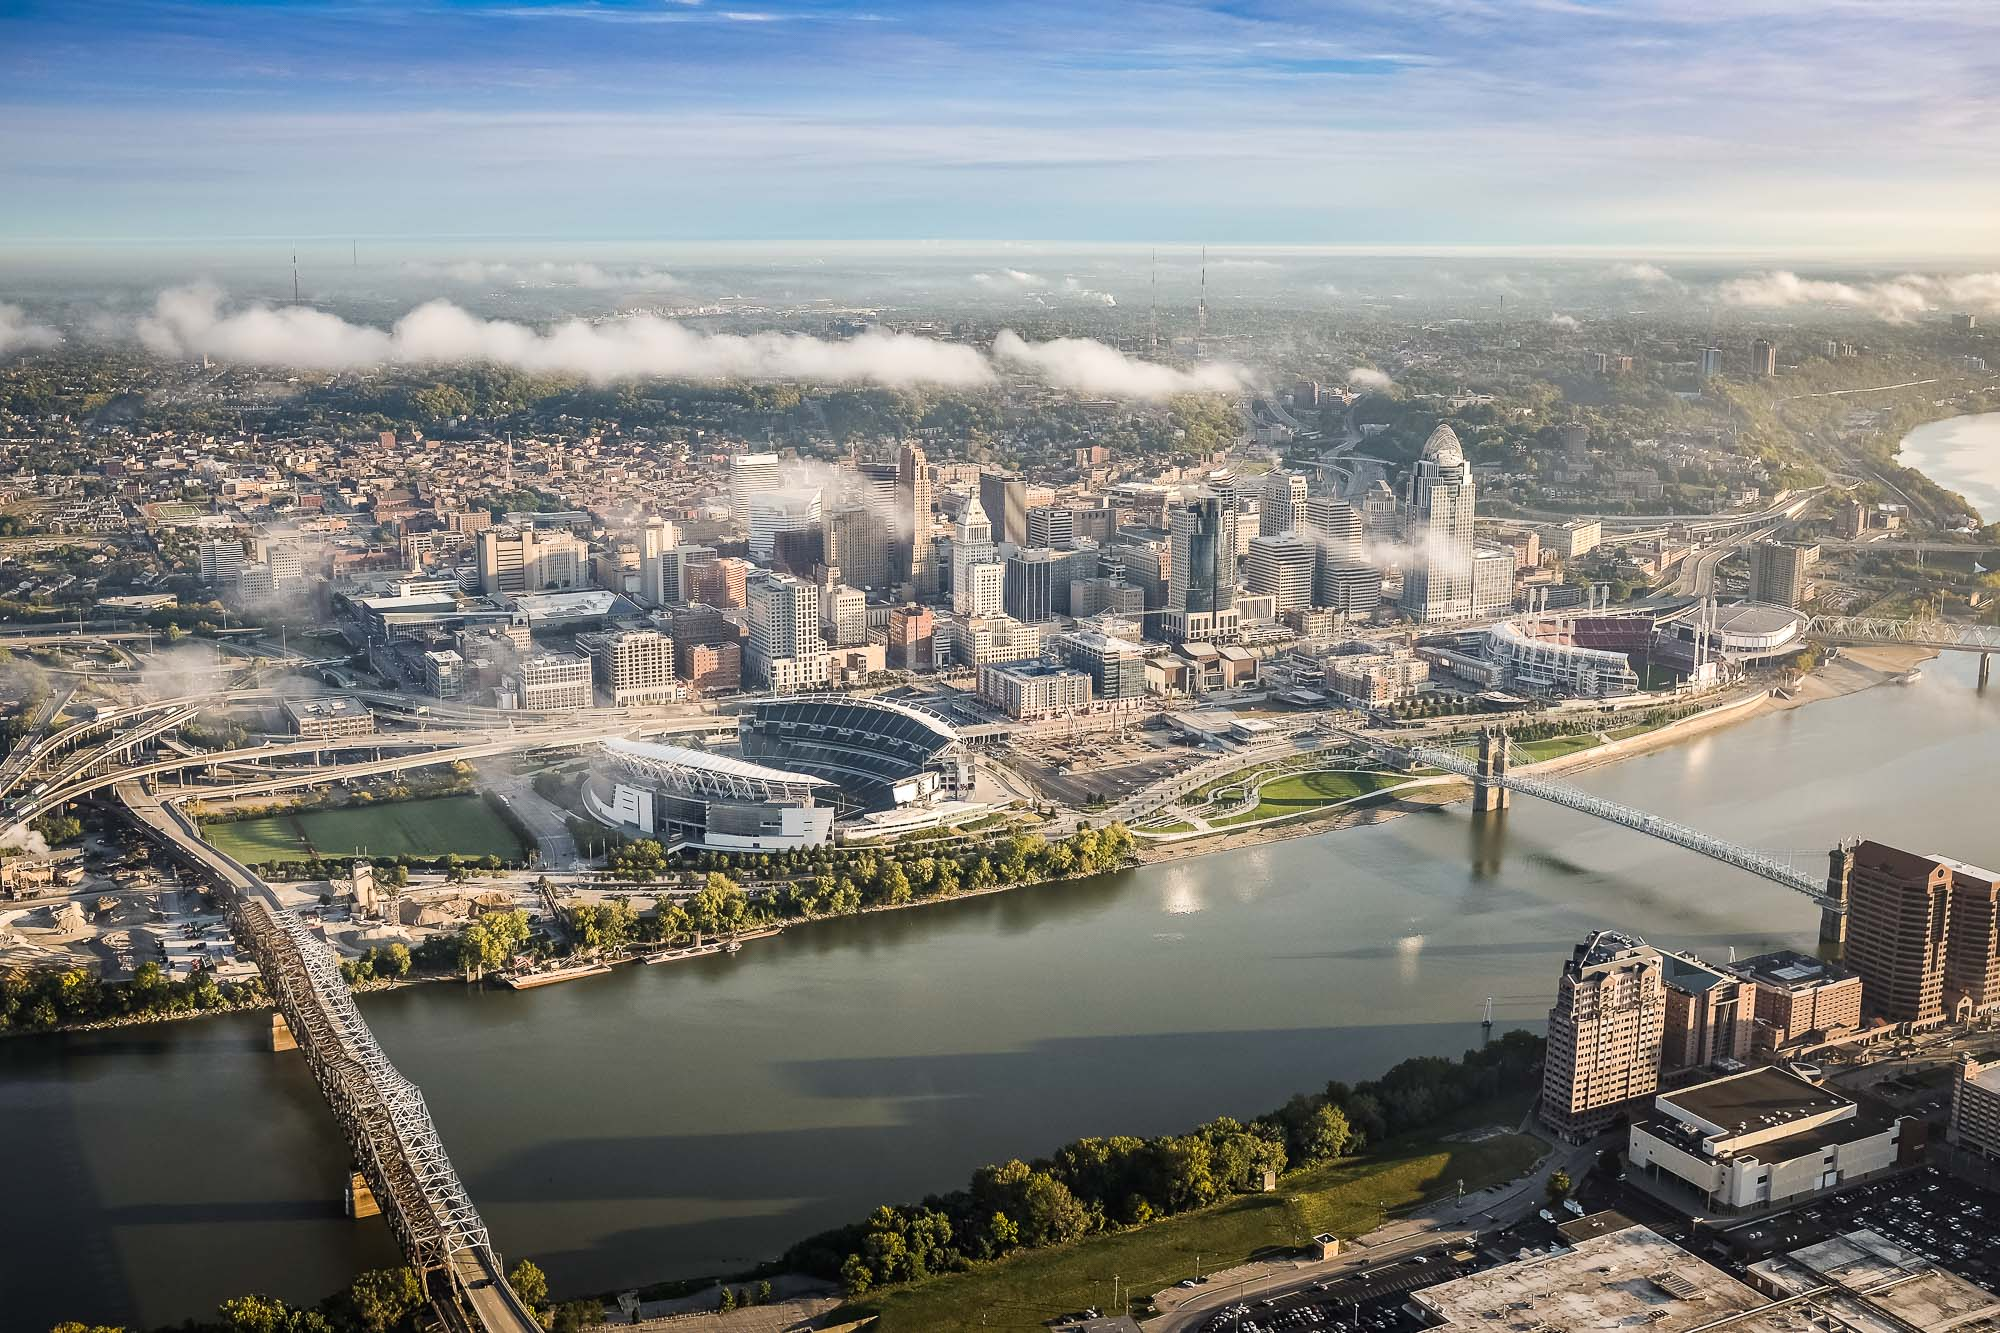 Aerial view of Cincinnati Ohio from above